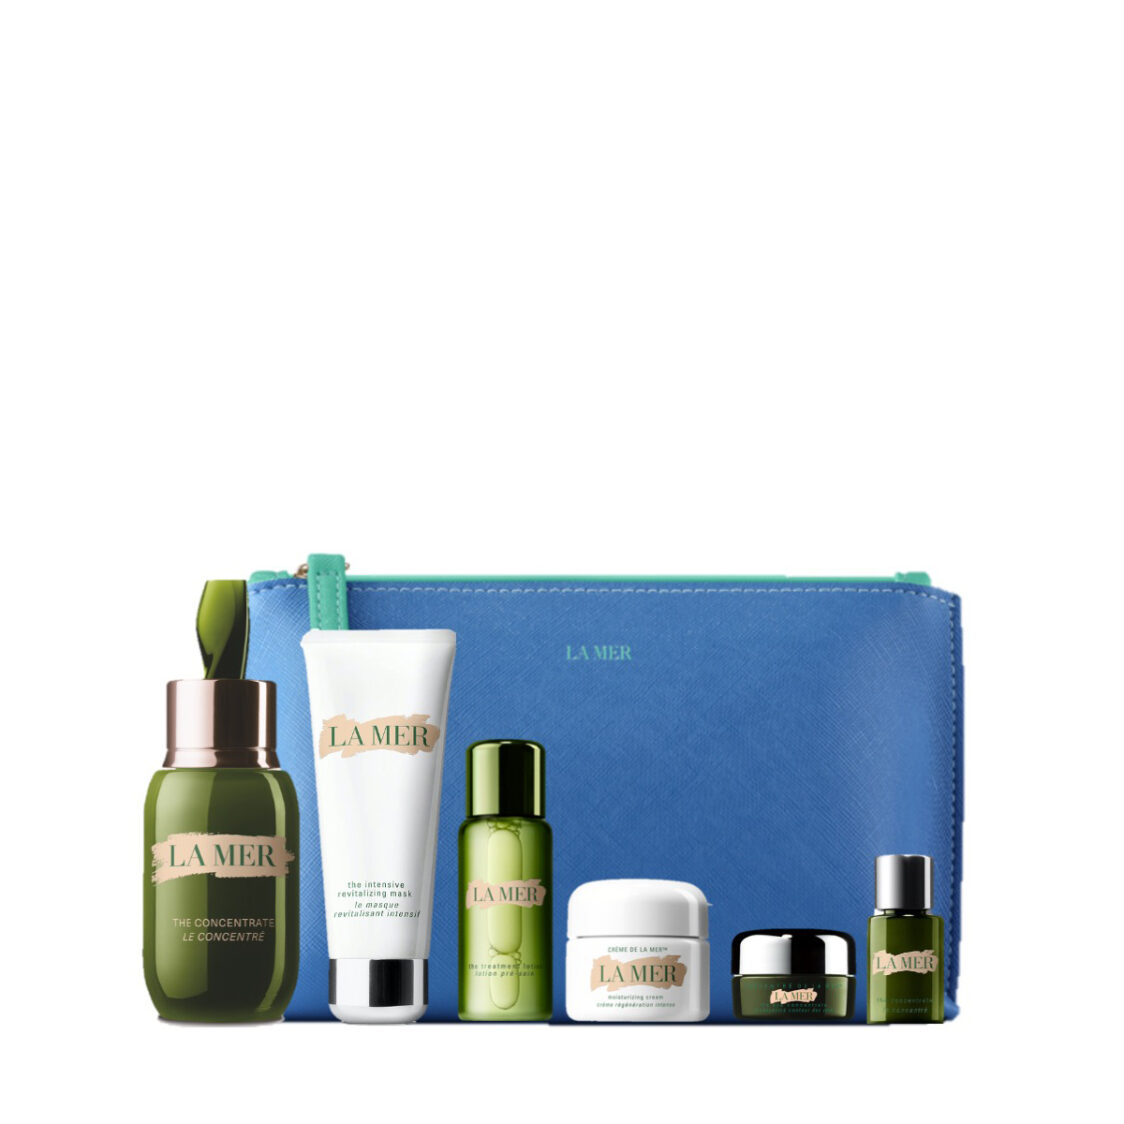 La Mer Soothing Revitalizing Collection worth 1549